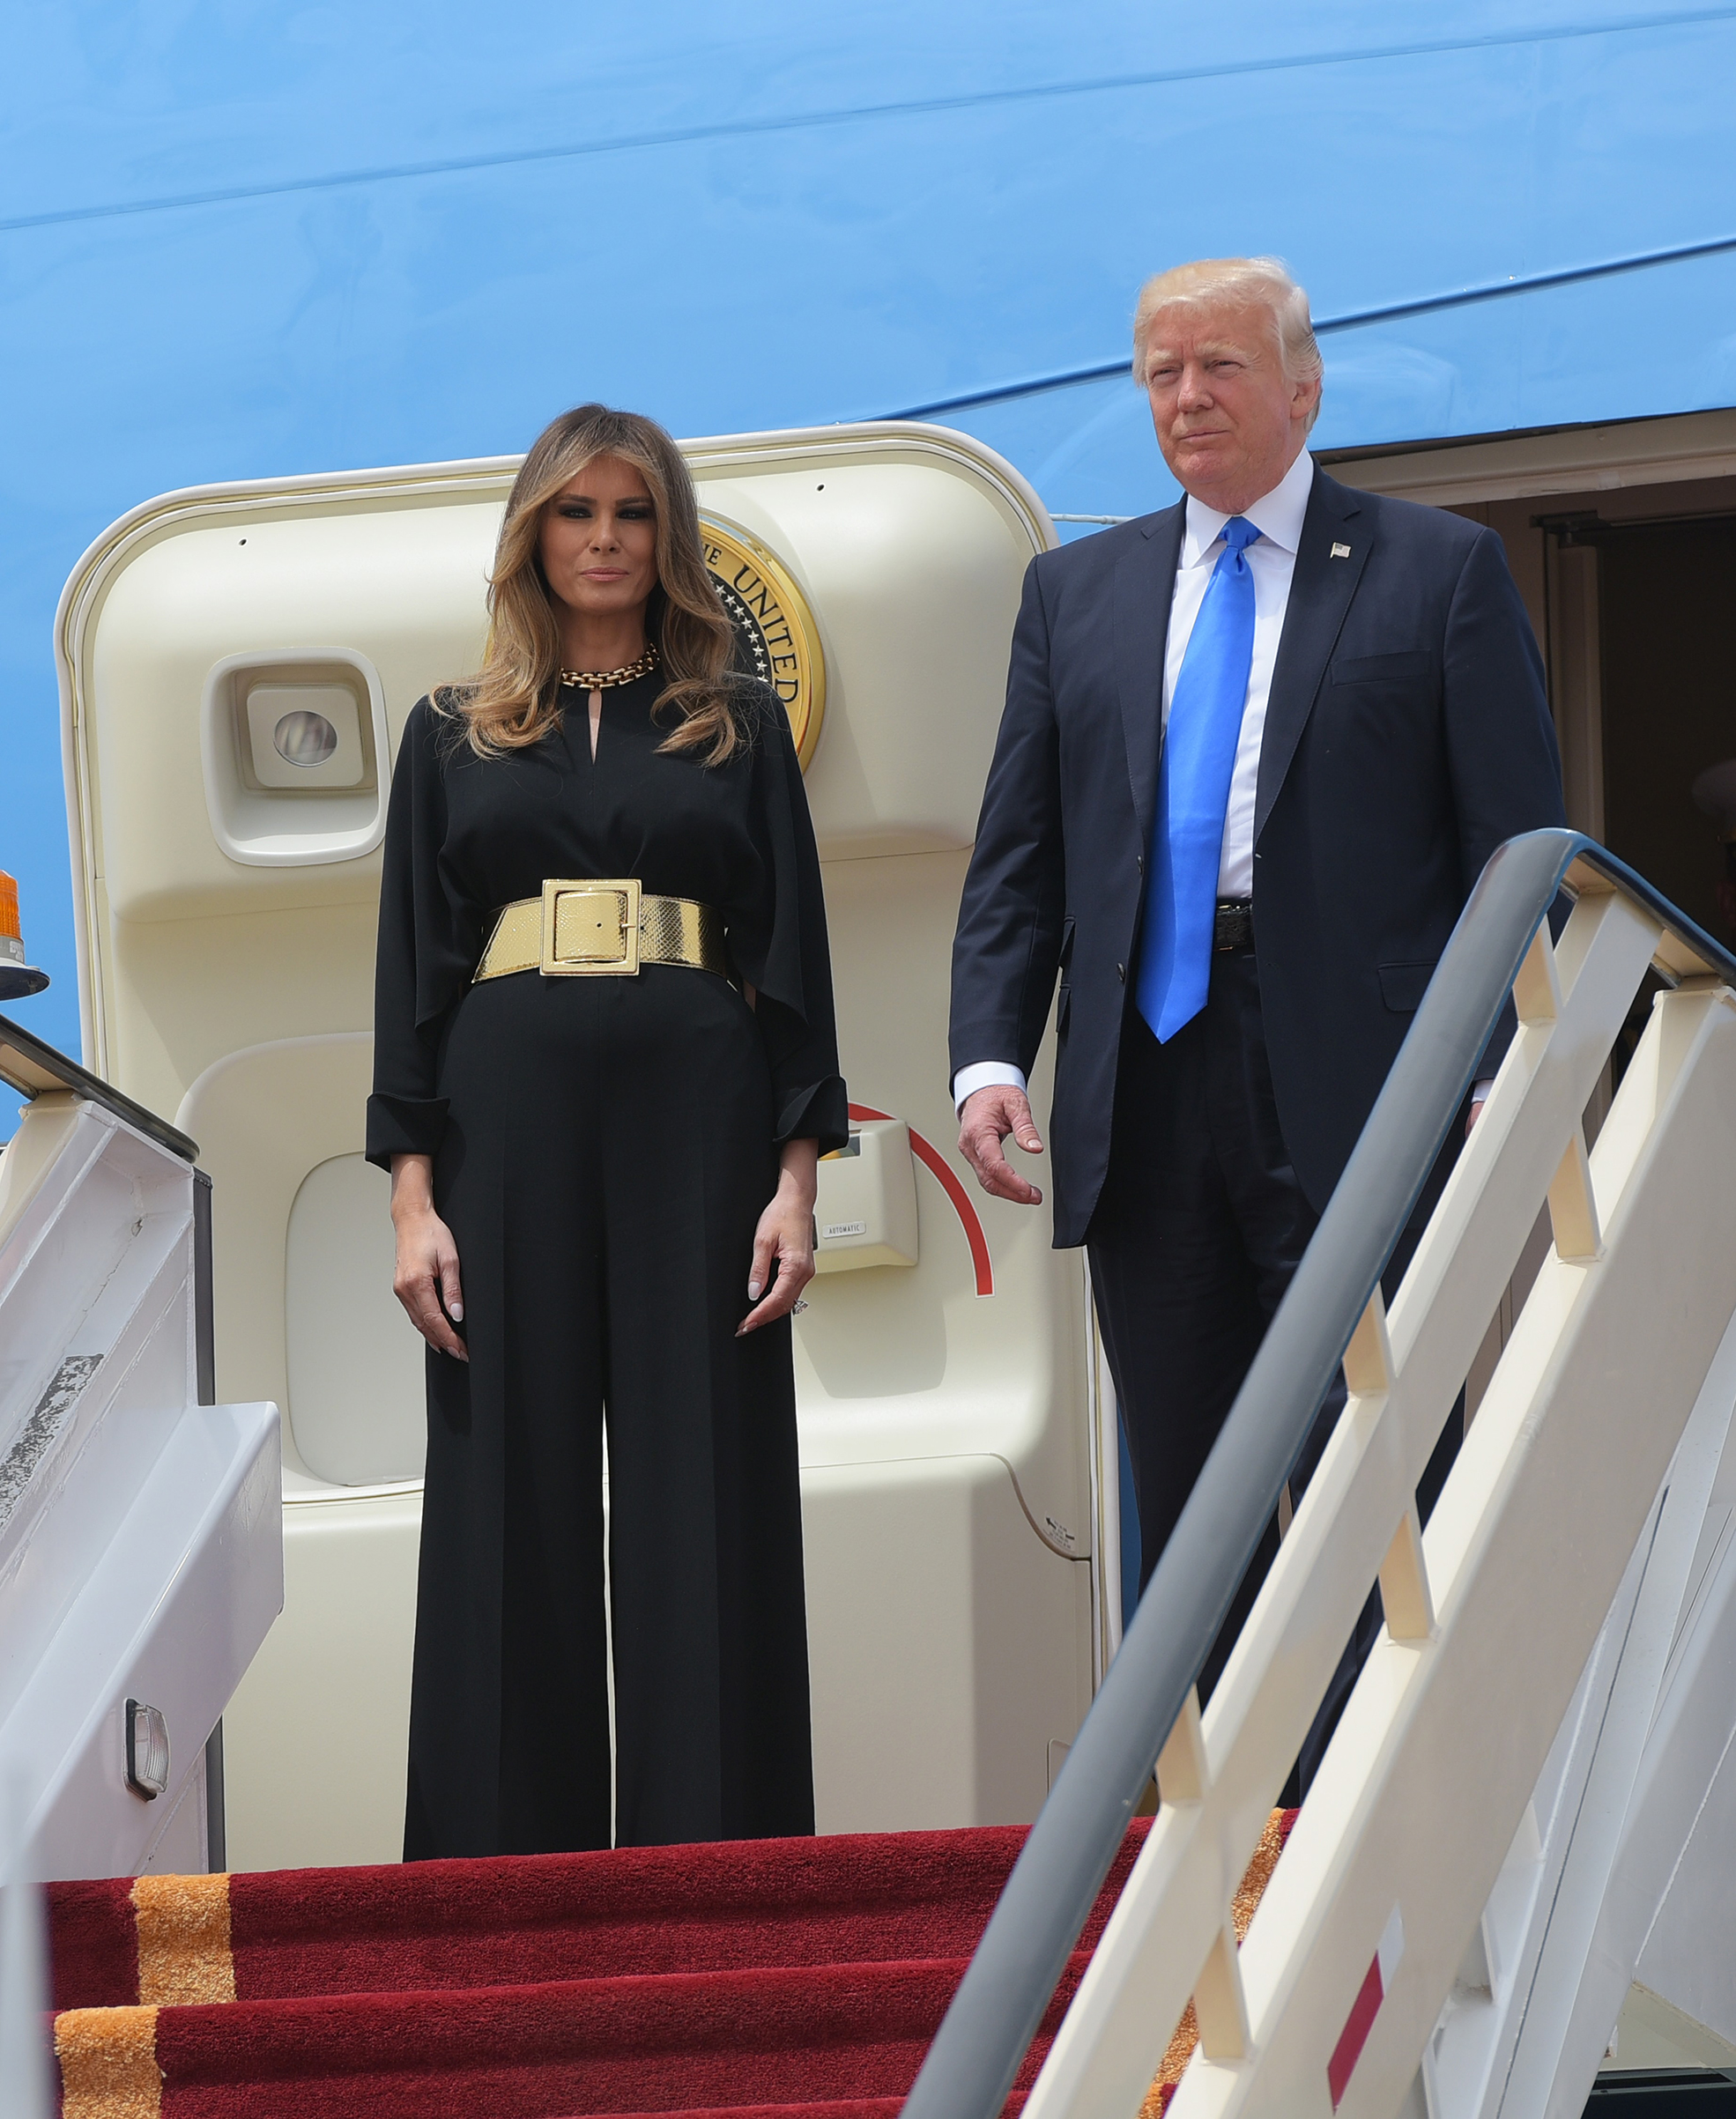 President Donald Trump and First Lady Melania Trump wearing black Stella McCartney jumpsuit and Saint Laurent belt, step off Air Force One upon arrival at King Khalid International Airport in Riyadh on May 20, 2017.